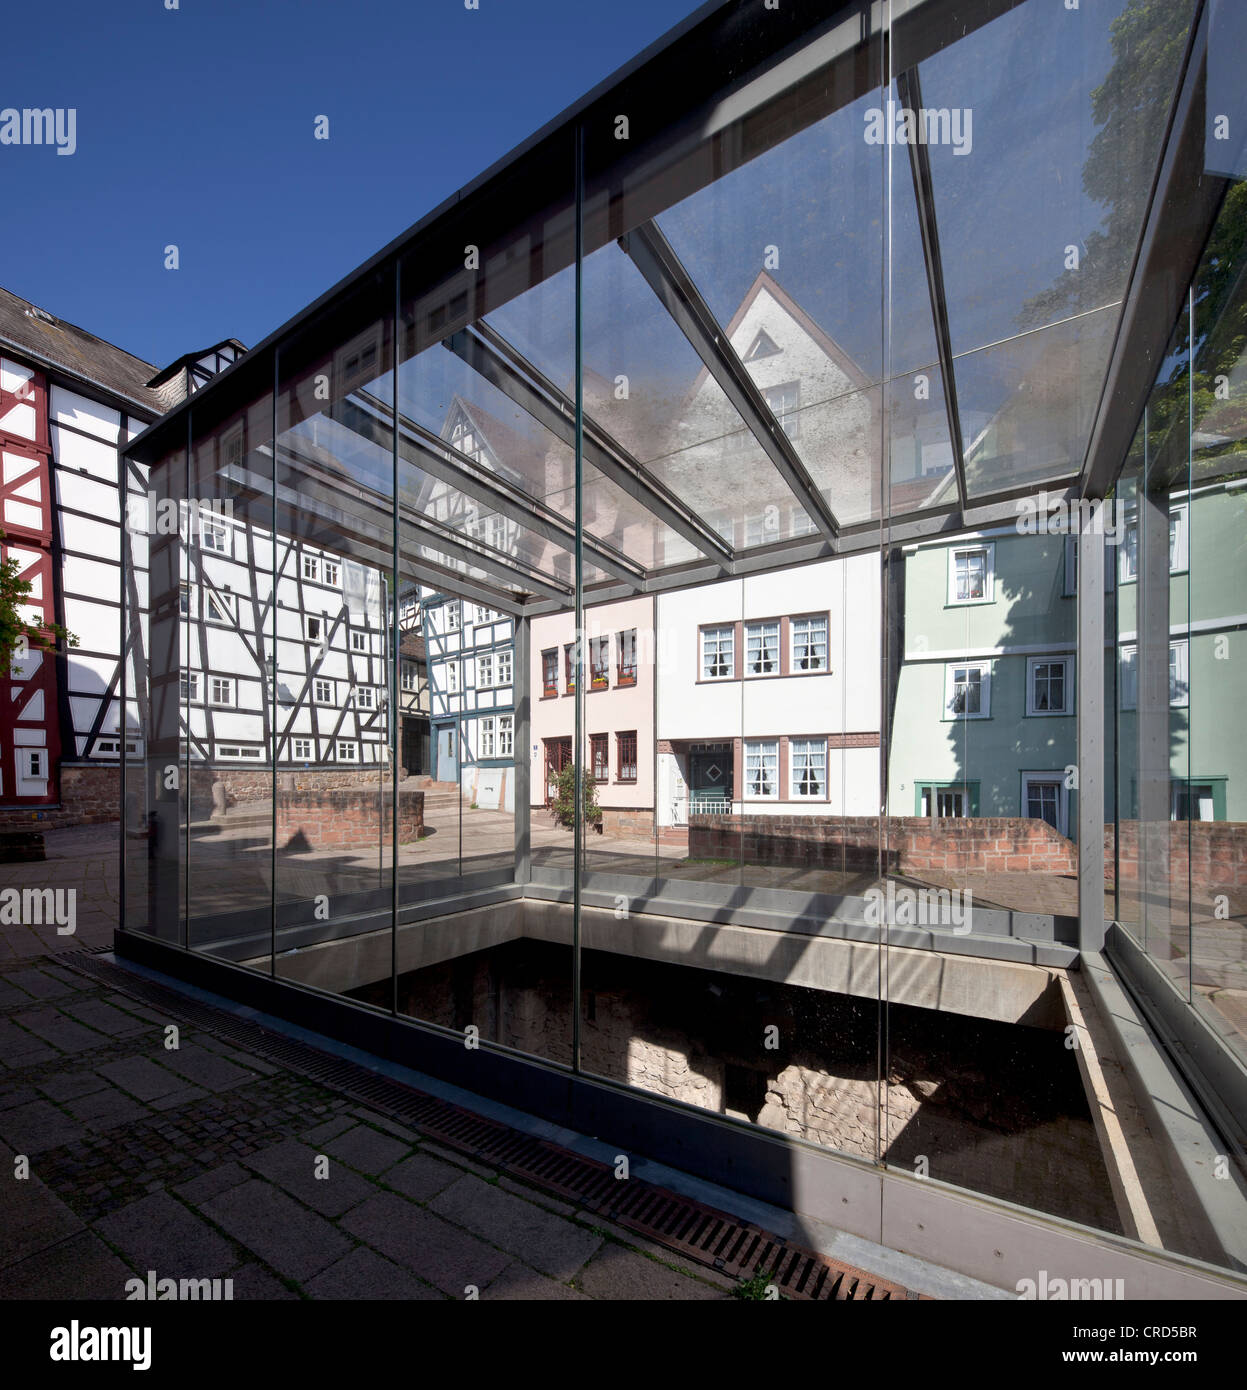 Old Synagogue, a glass cube with archaeological excavations, Upper Town, Marburg, Hesse, Germany, Europe, PublicGround - Stock Image